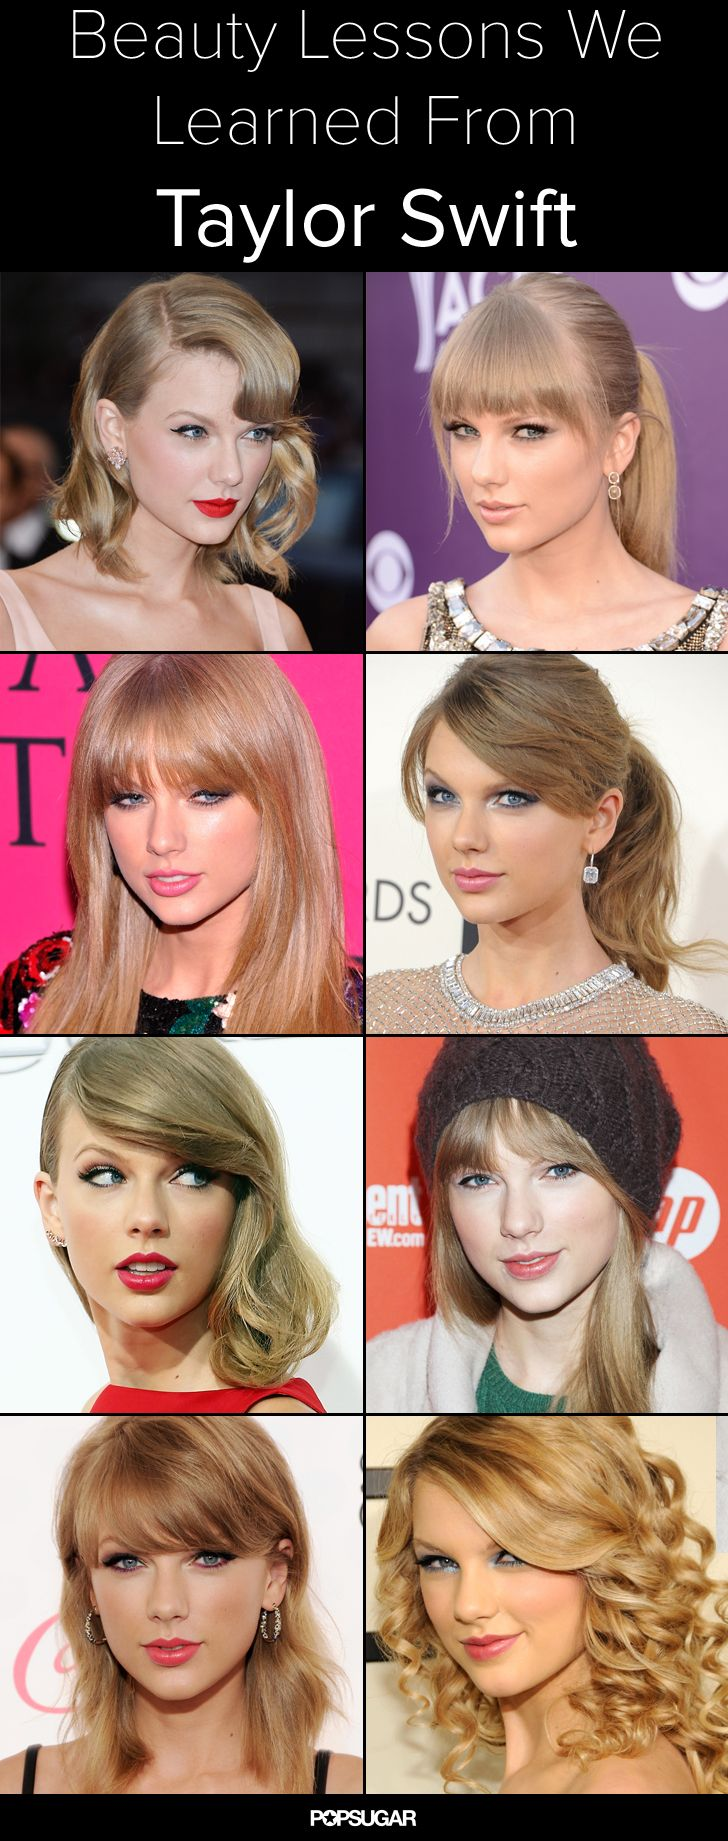 Does Taylor Swift ever have a bad beauty day?